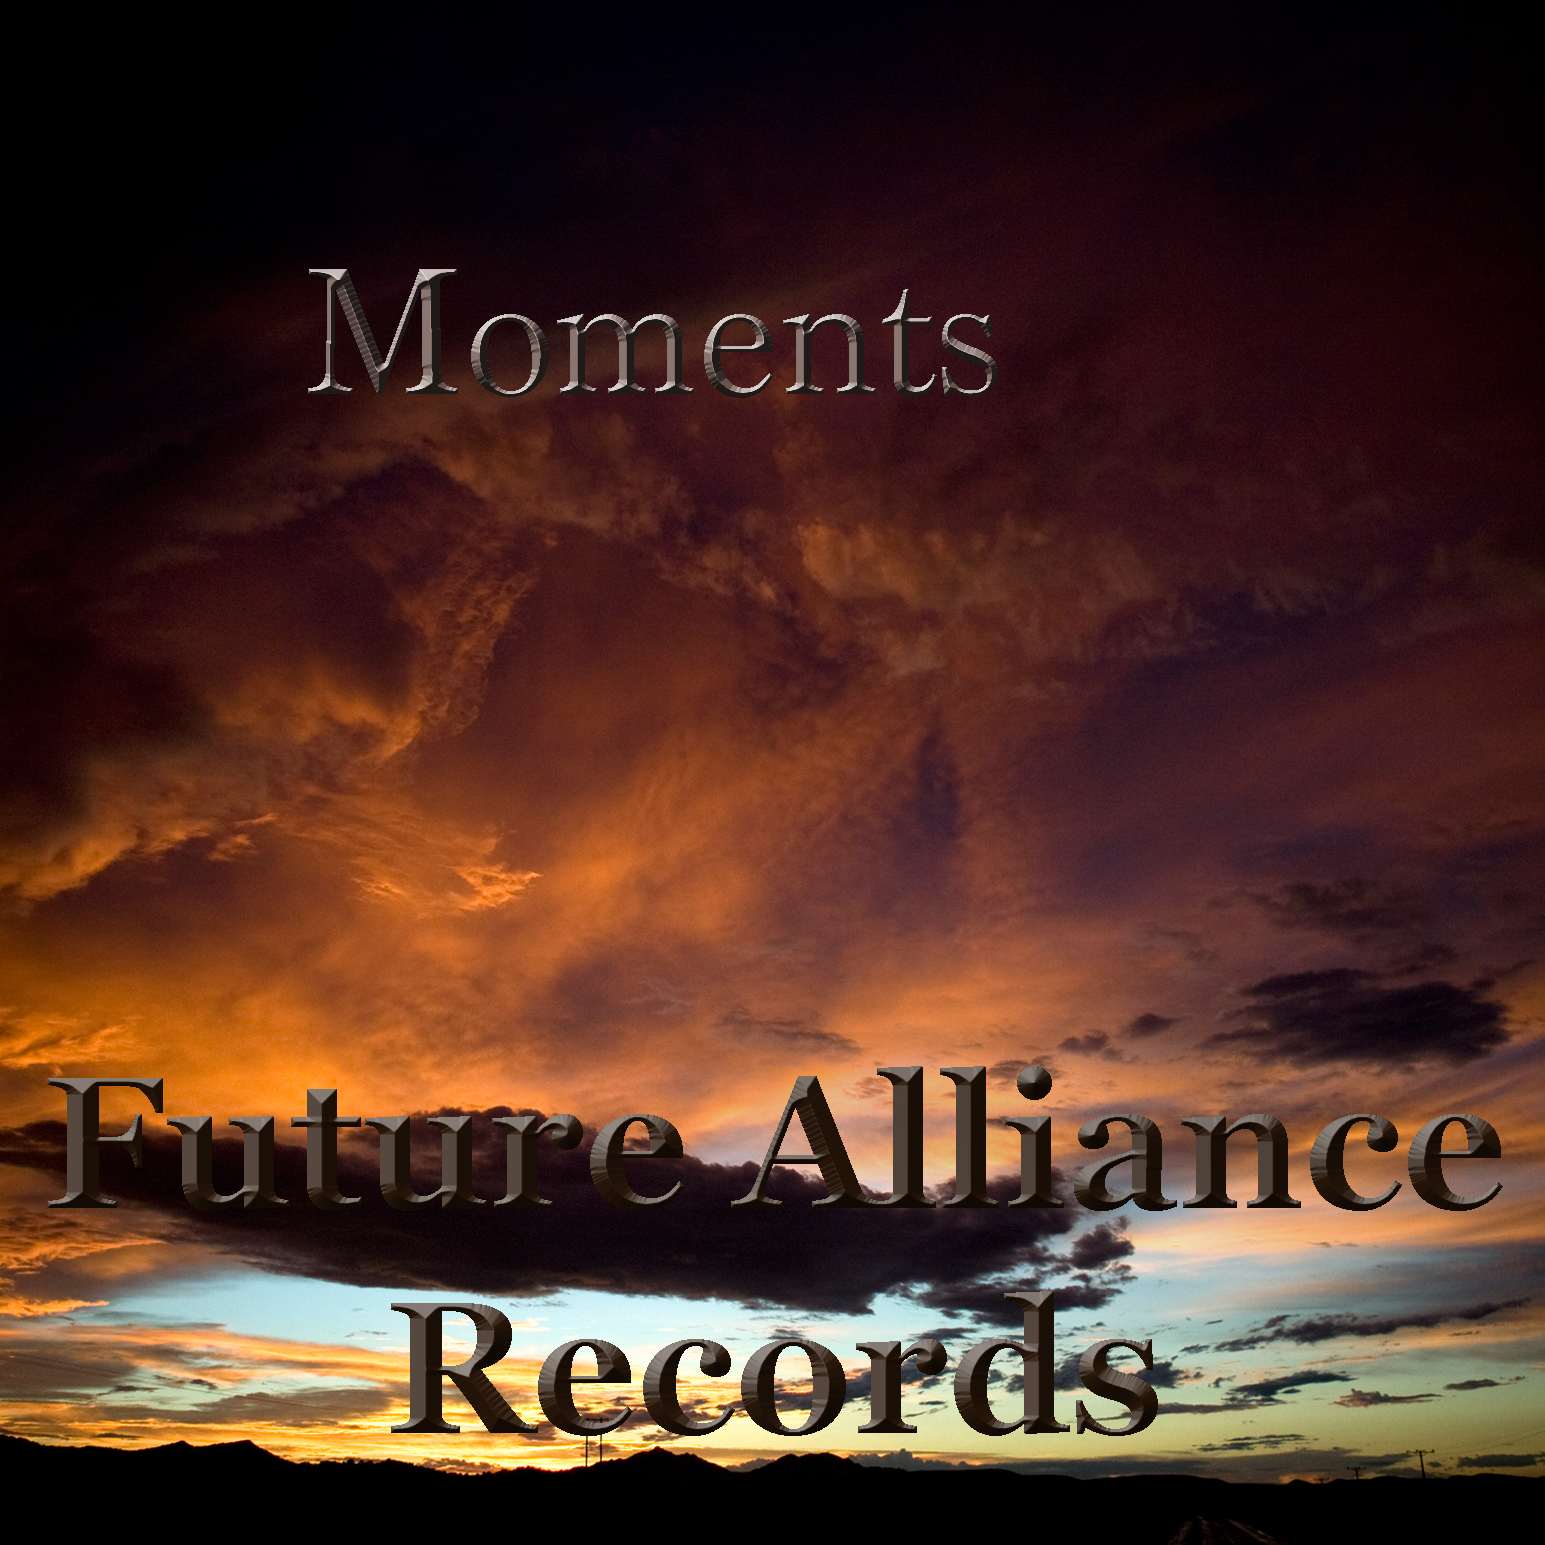 Future Alliance Records